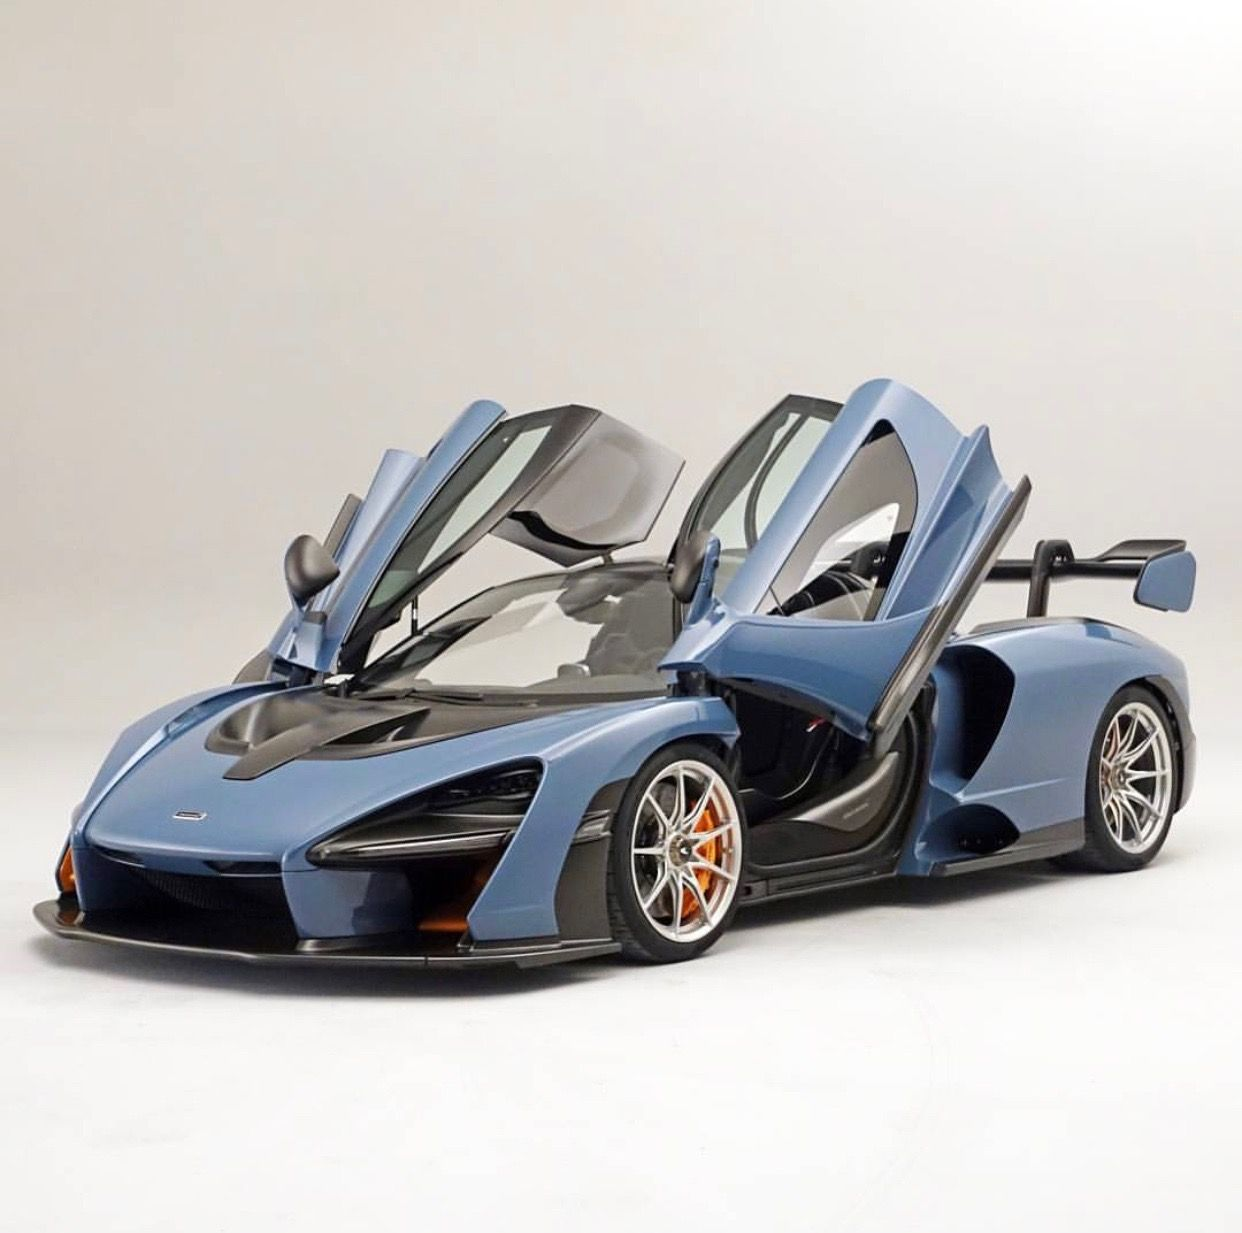 McLaren Senna Painted In Vision Victory Grey W/ Exposed